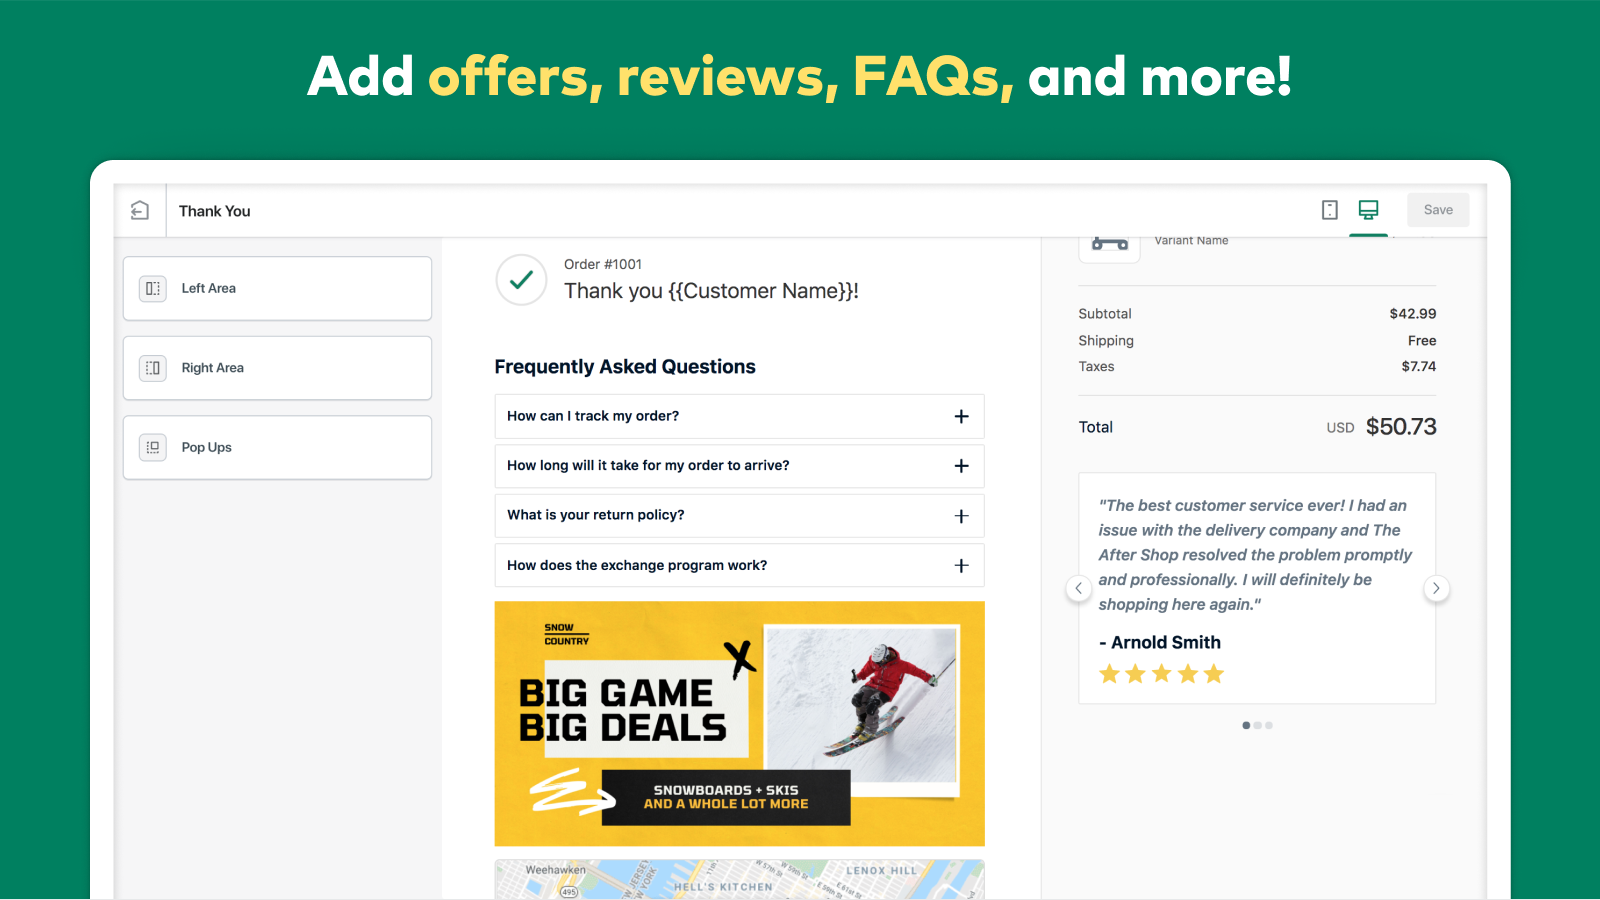 AfterSell Post Purchase Offers, Reviews, and FAQs